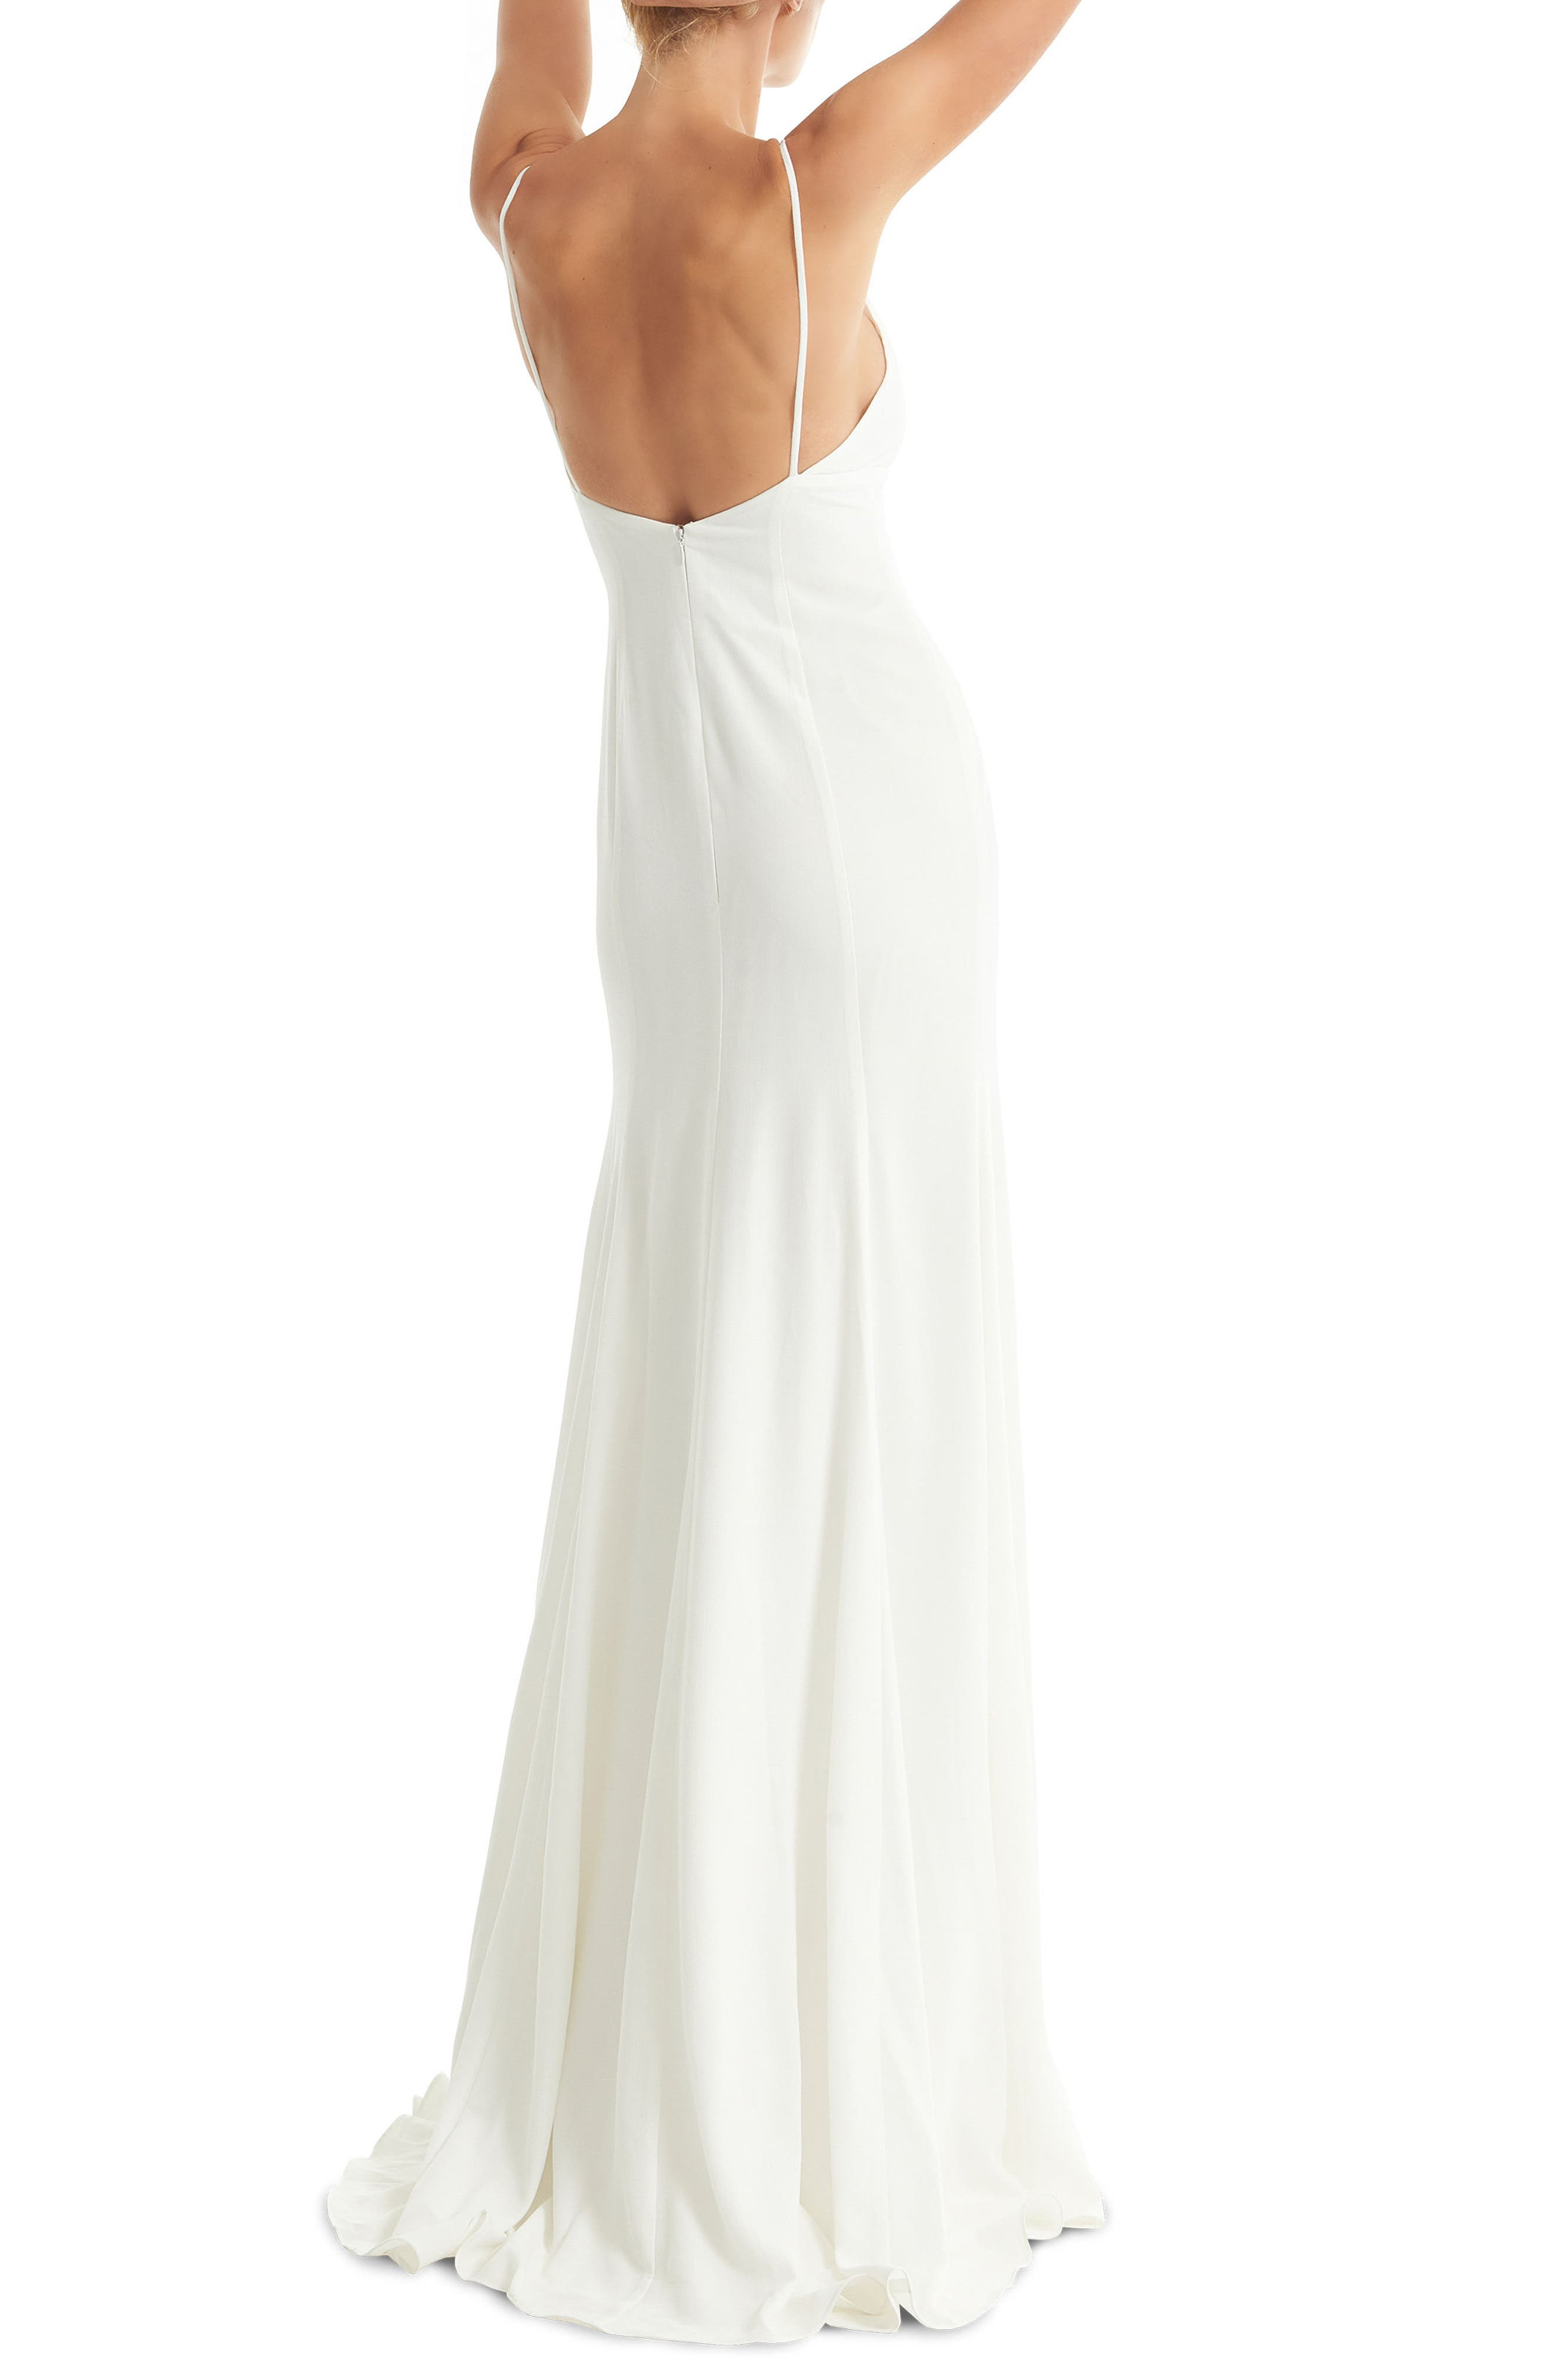 JOANNA AUGUST, Crosby Crepe Mermaid Gown, Alternate thumbnail 2, color, WHITE